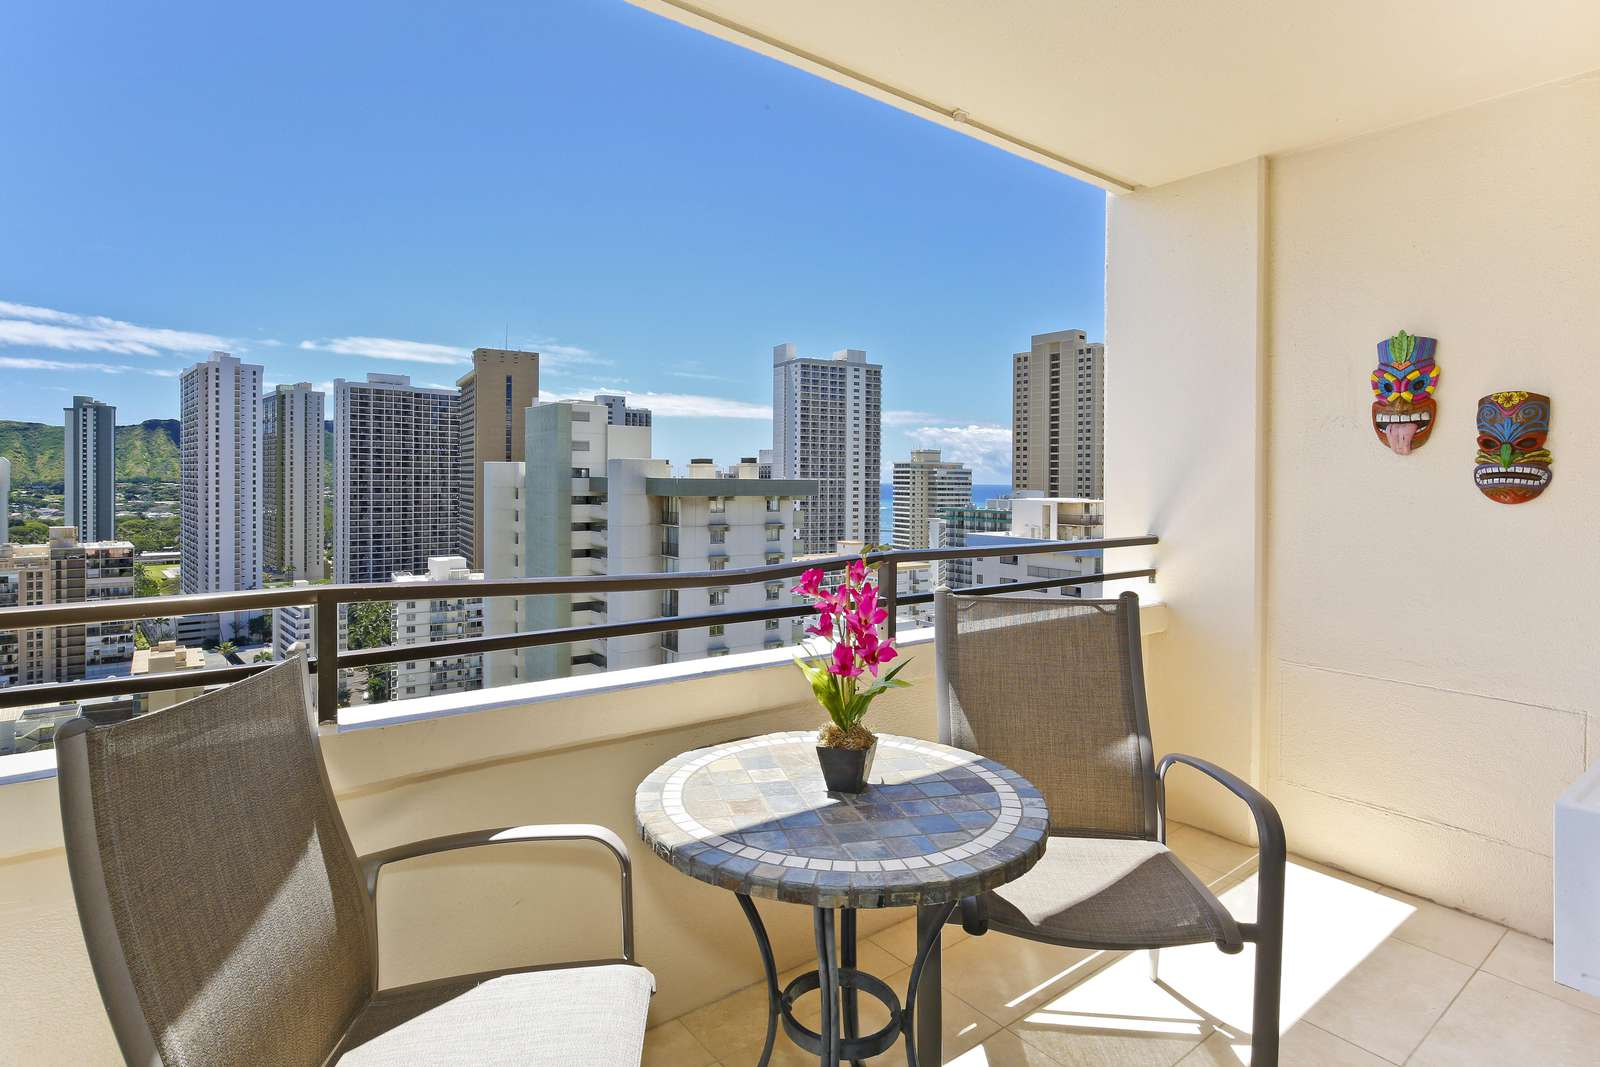 Gorgeous private lanai with great views